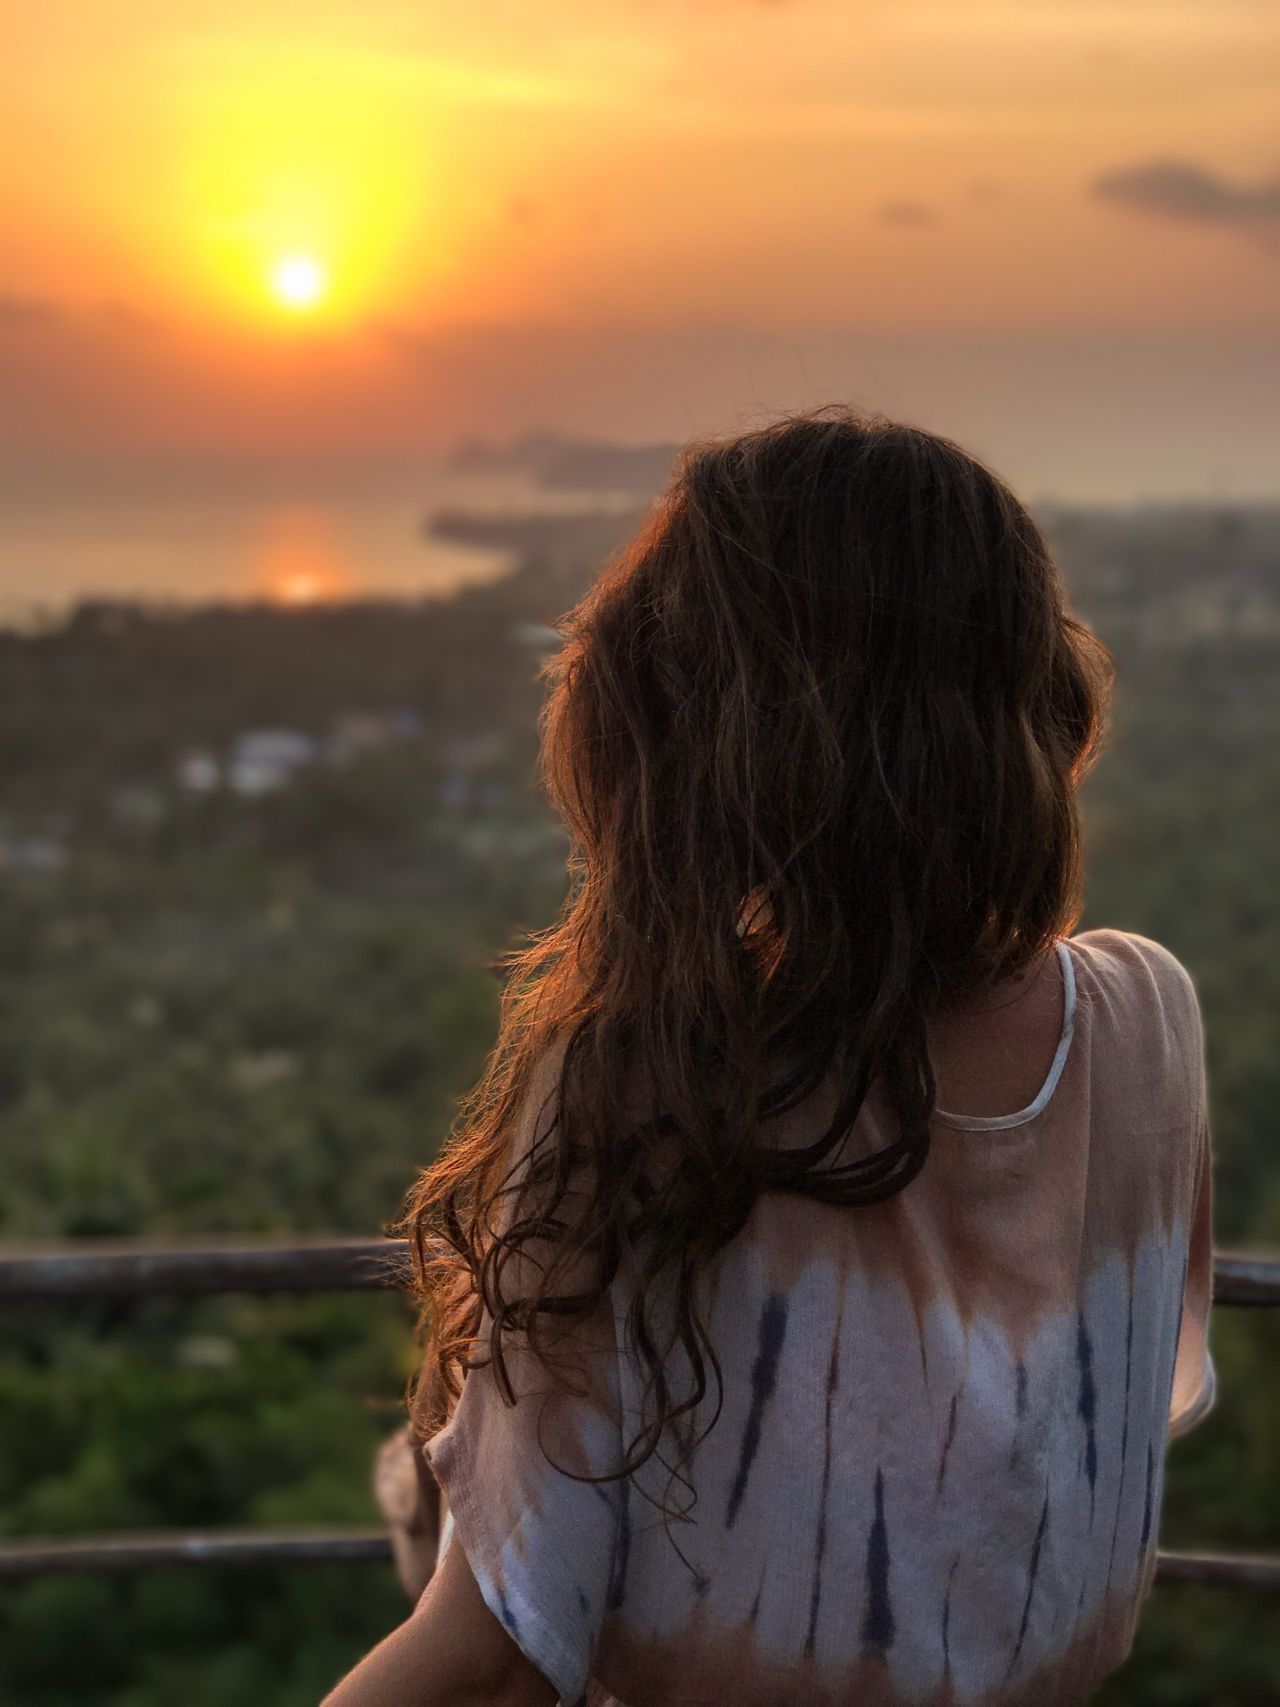 Adult Adults Only Beauty Beauty In Nature Close-up Enjoying The View Human Body Part Human Hair Nature One Person One Woman Only Only Women Outdoors People Rear View Scenics Sea Sky Standing Sunset Travel Destinations Vacations Water Women Young Adult